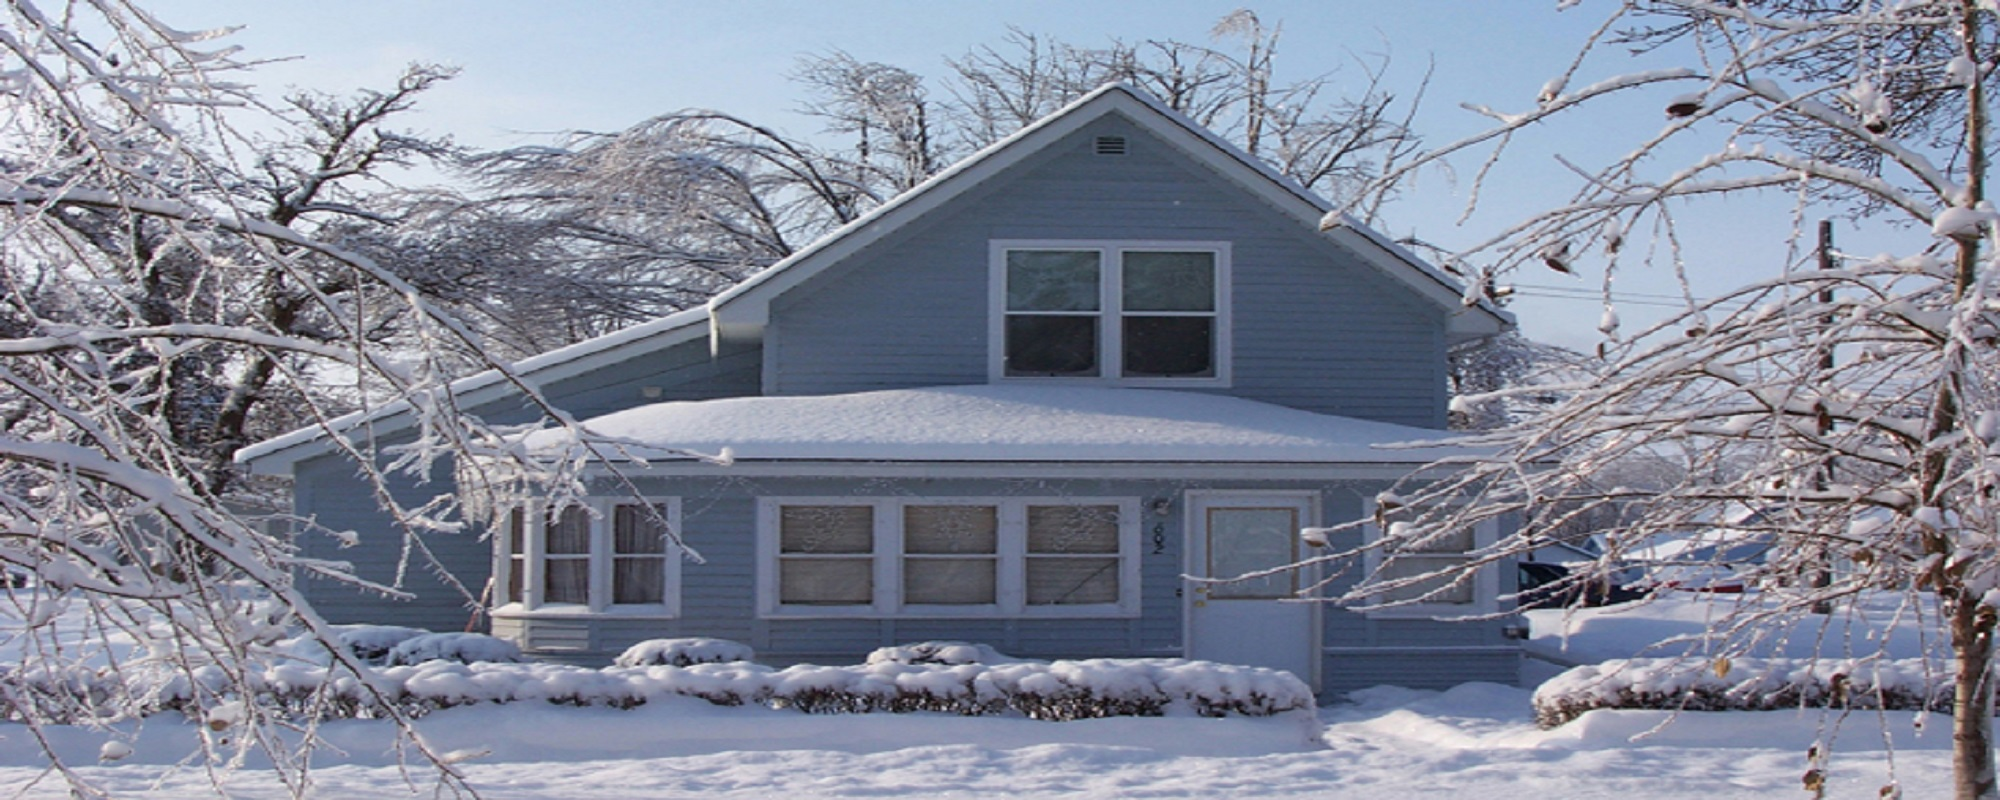 importance of winter home preparation